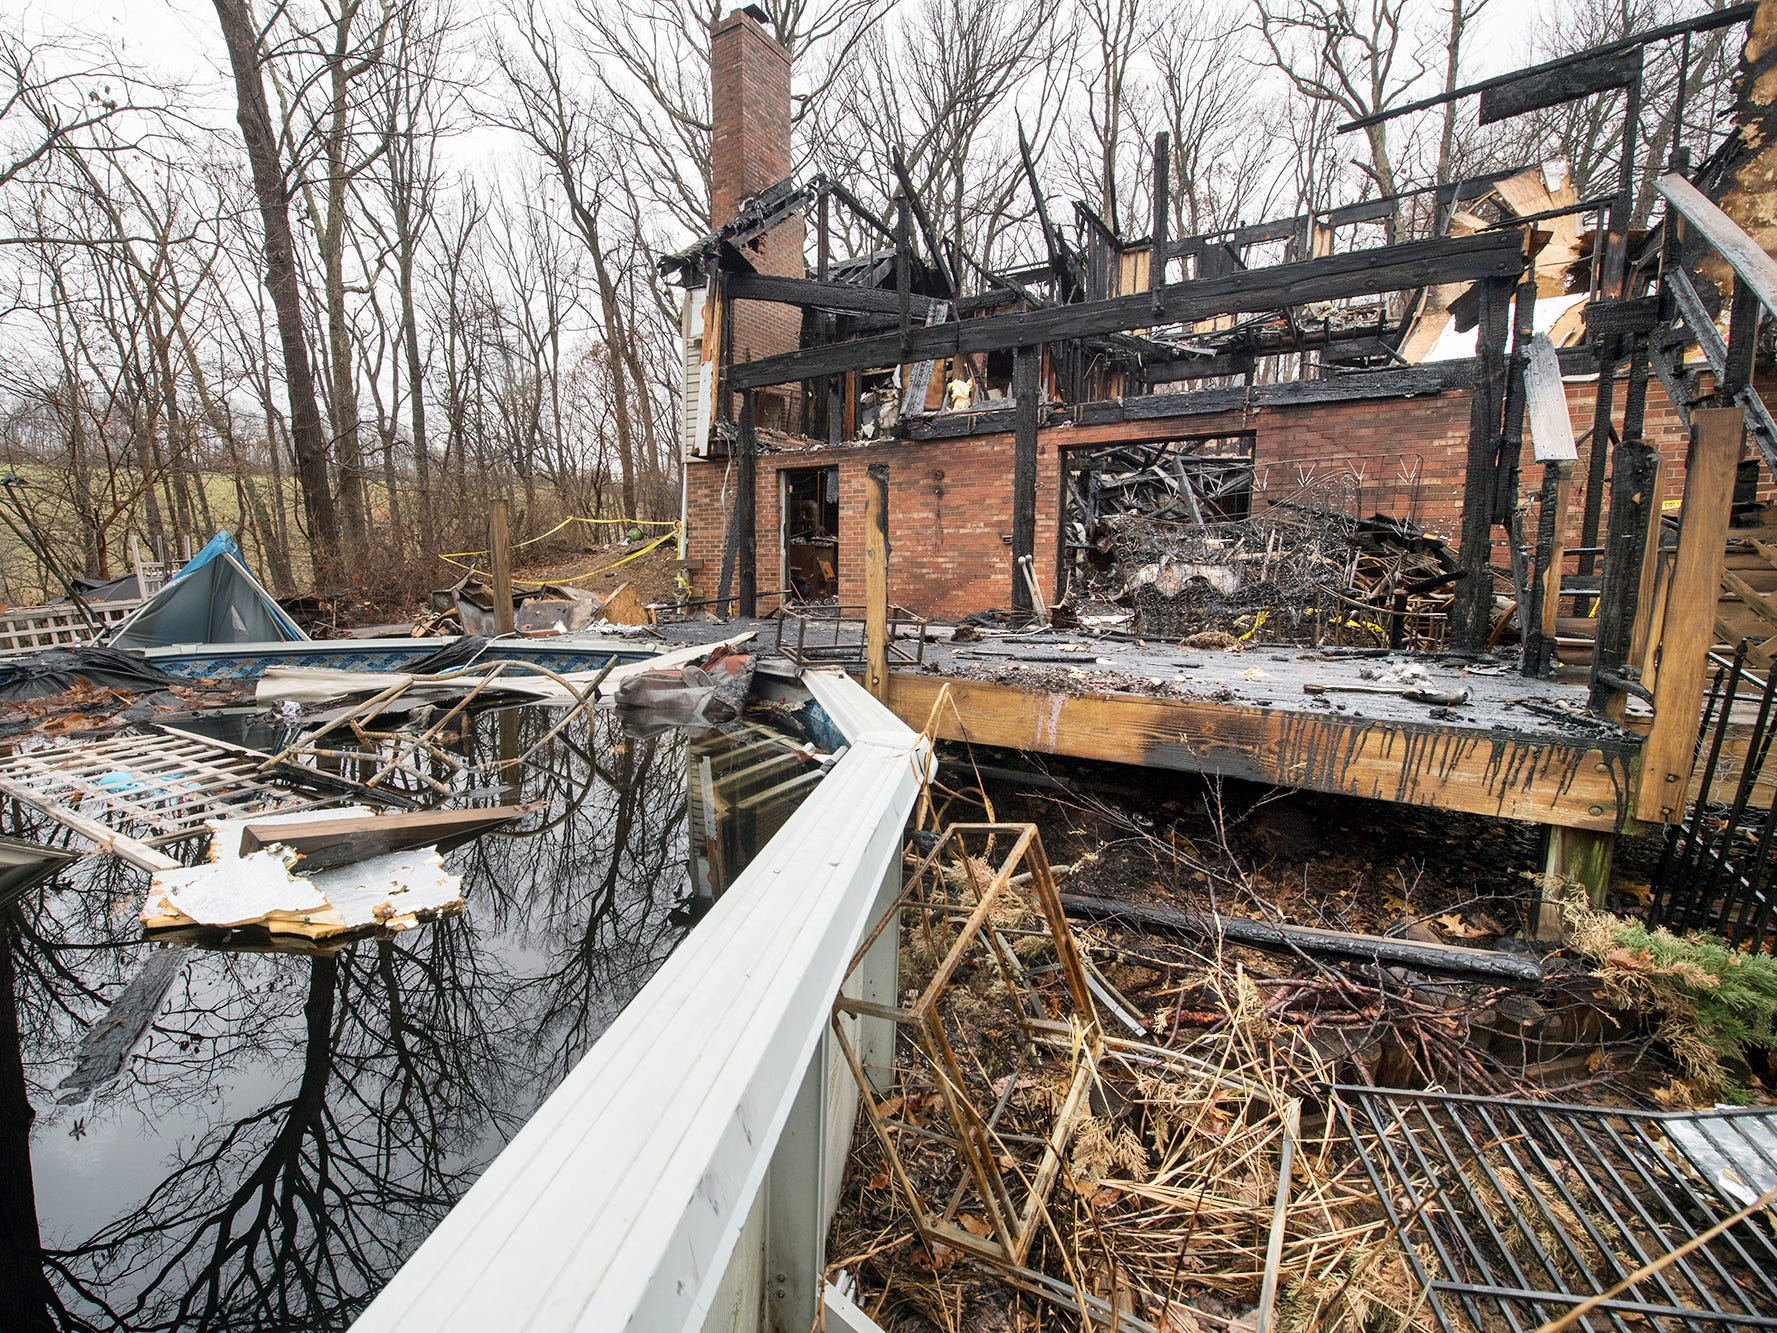 The back of the Shrewsbury home, on Sunday December 2, 2018, once had a two tier deck overlooking the pool.